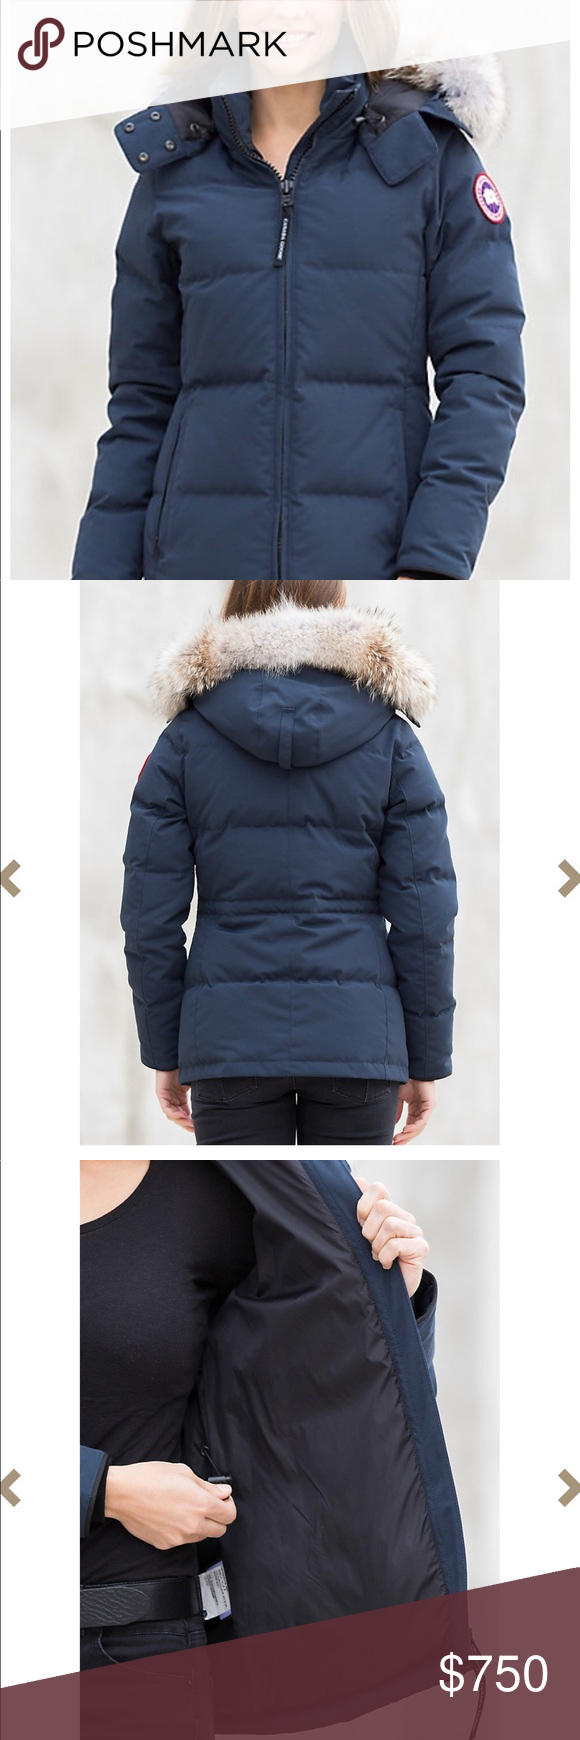 canada goose jacket too big